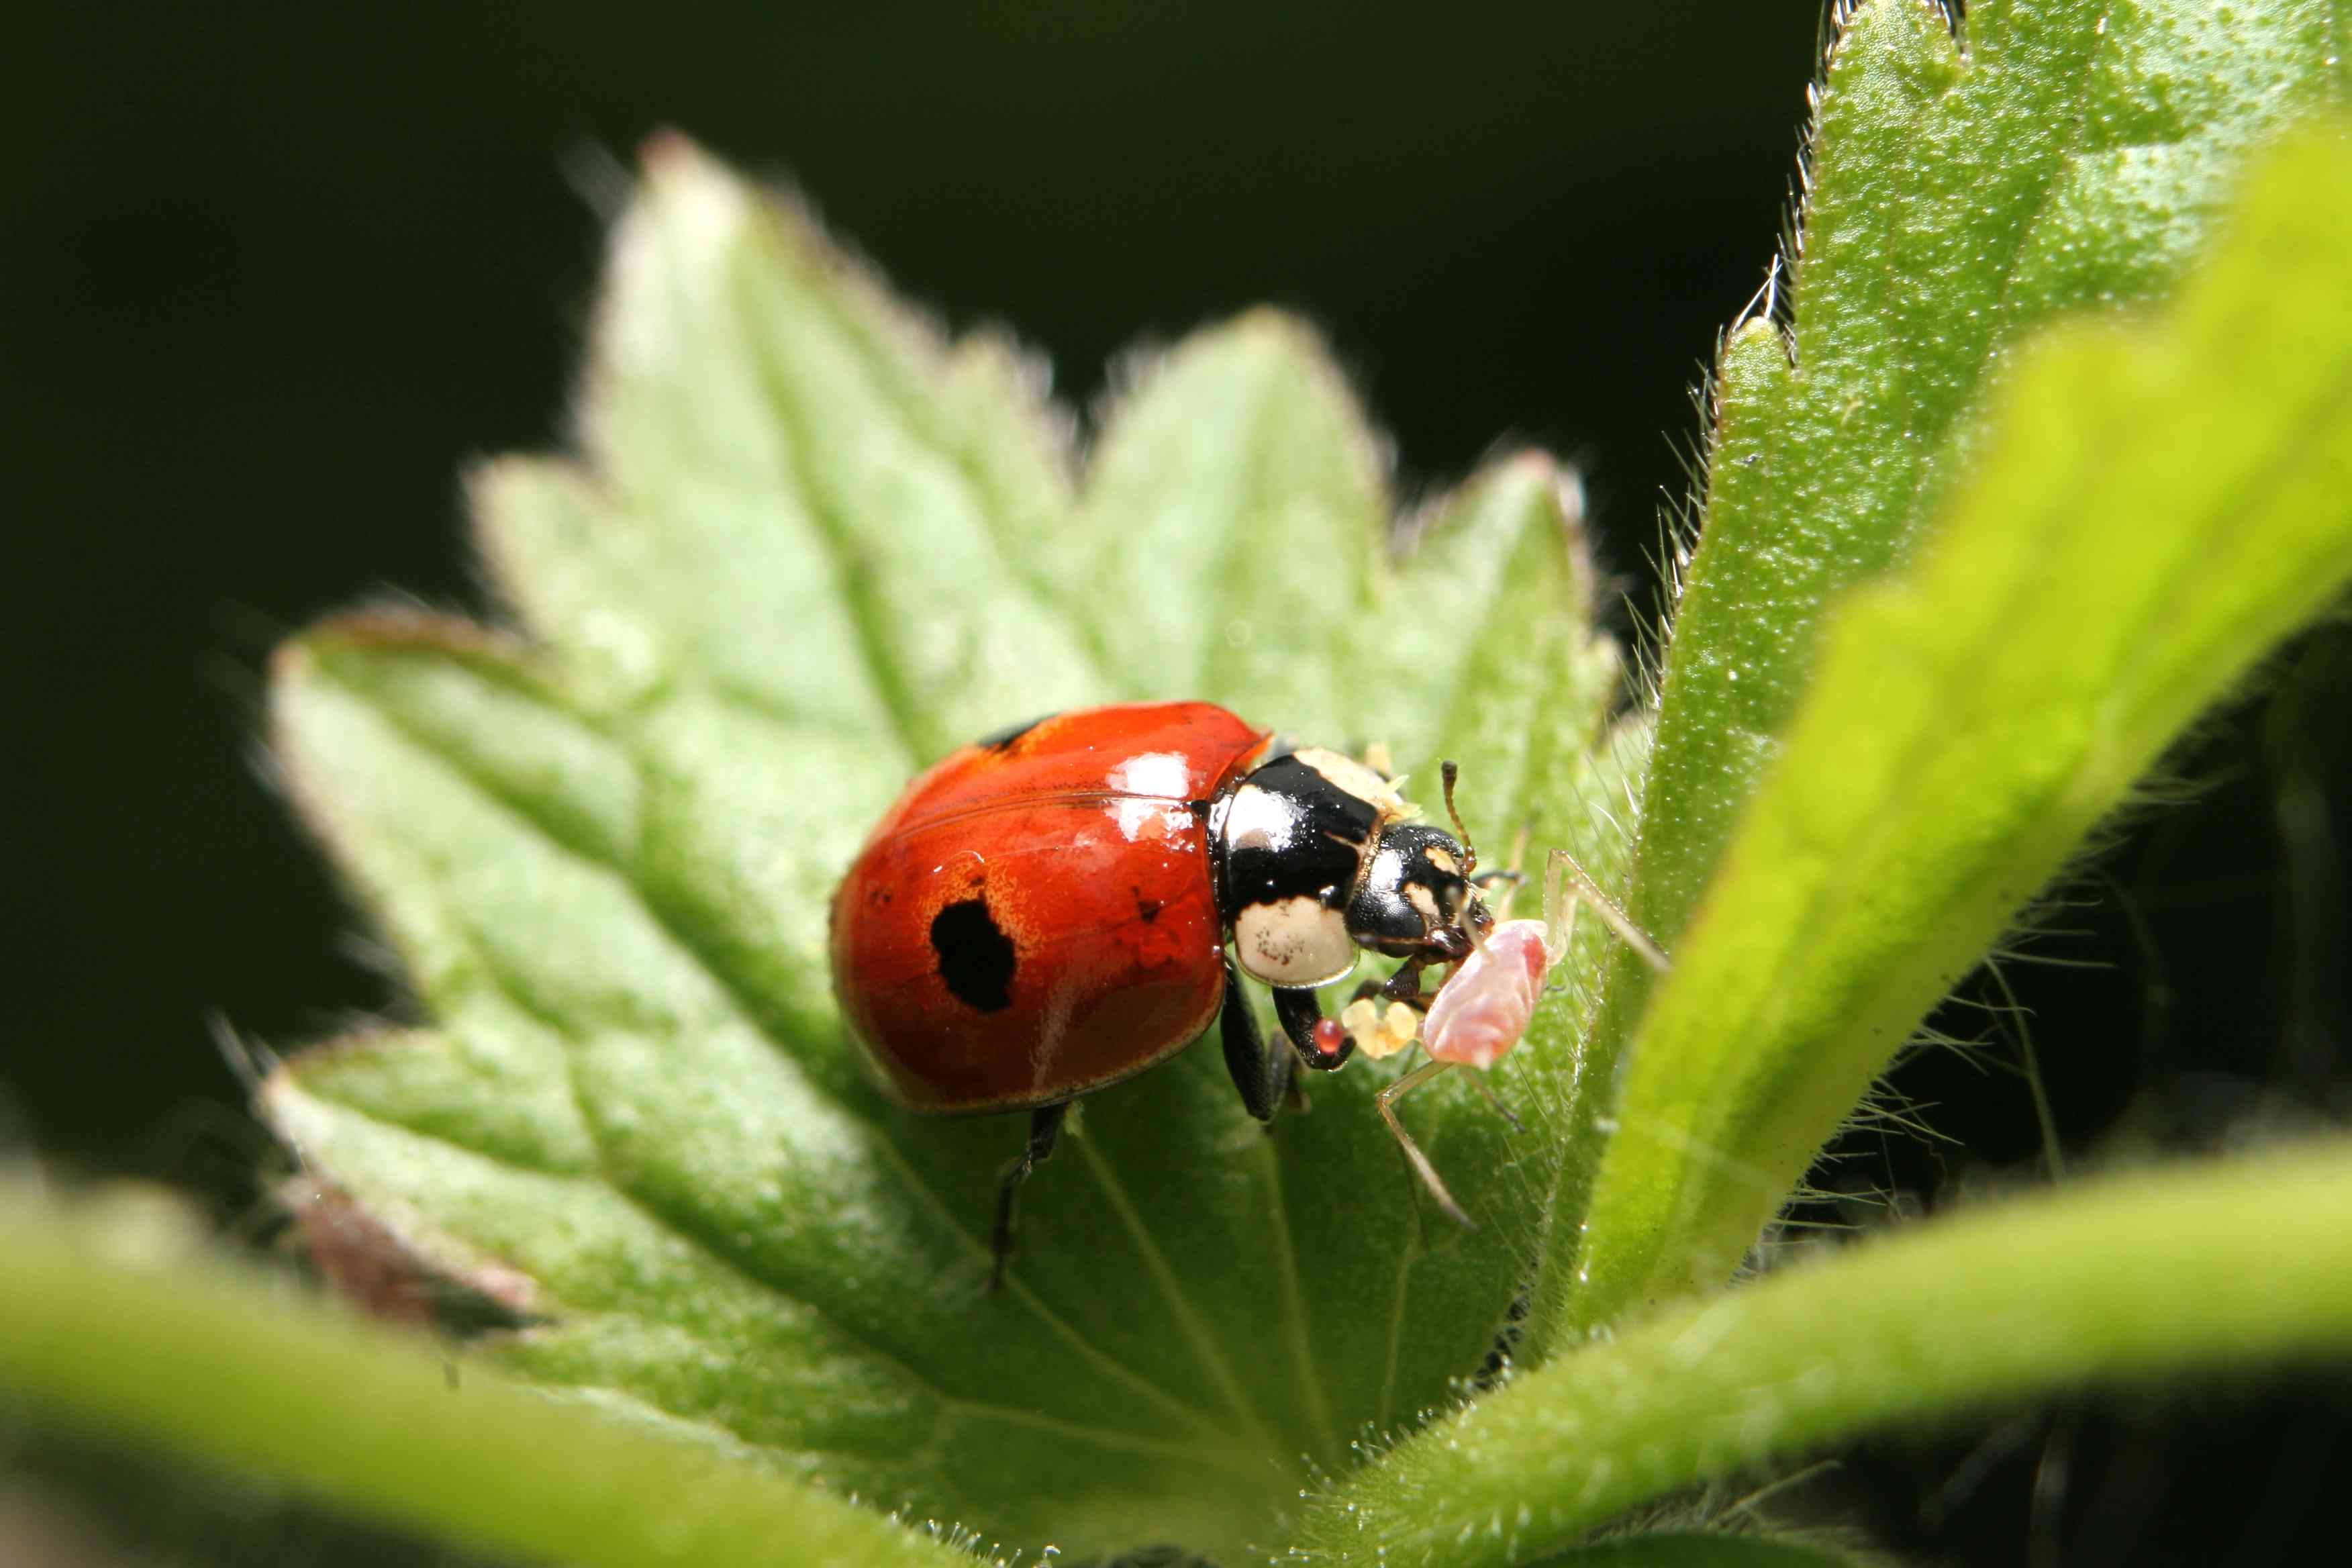 two-spotted lady bug, or lady beetle, eating an aphid